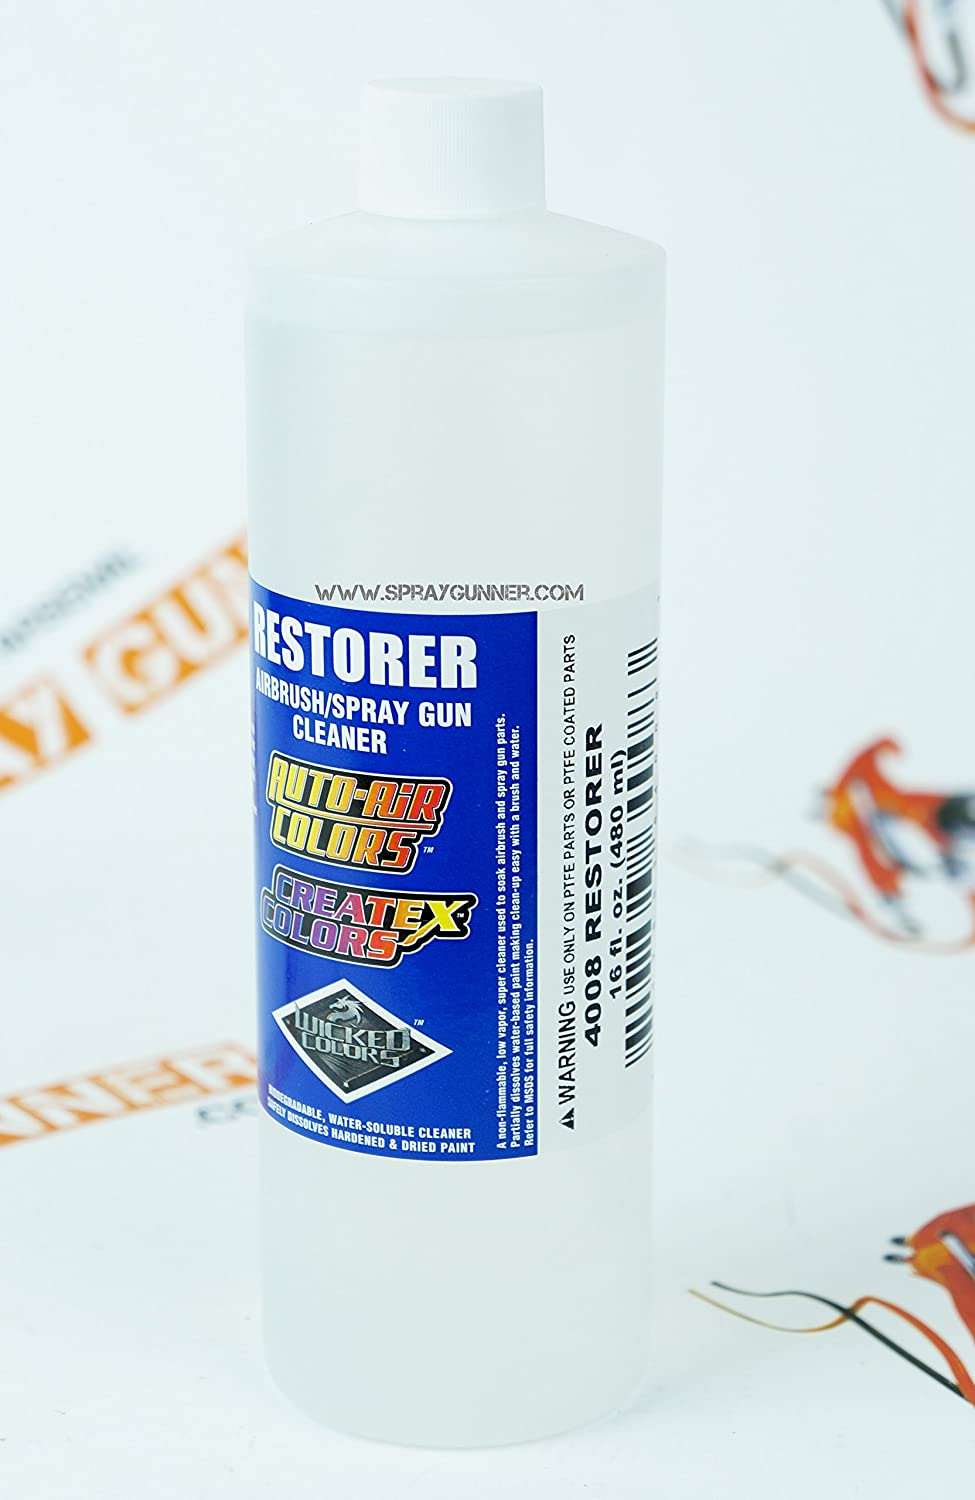 Createx 4008 Airbrush Paint Restorer 16oz 4008 16 By Spraygunner